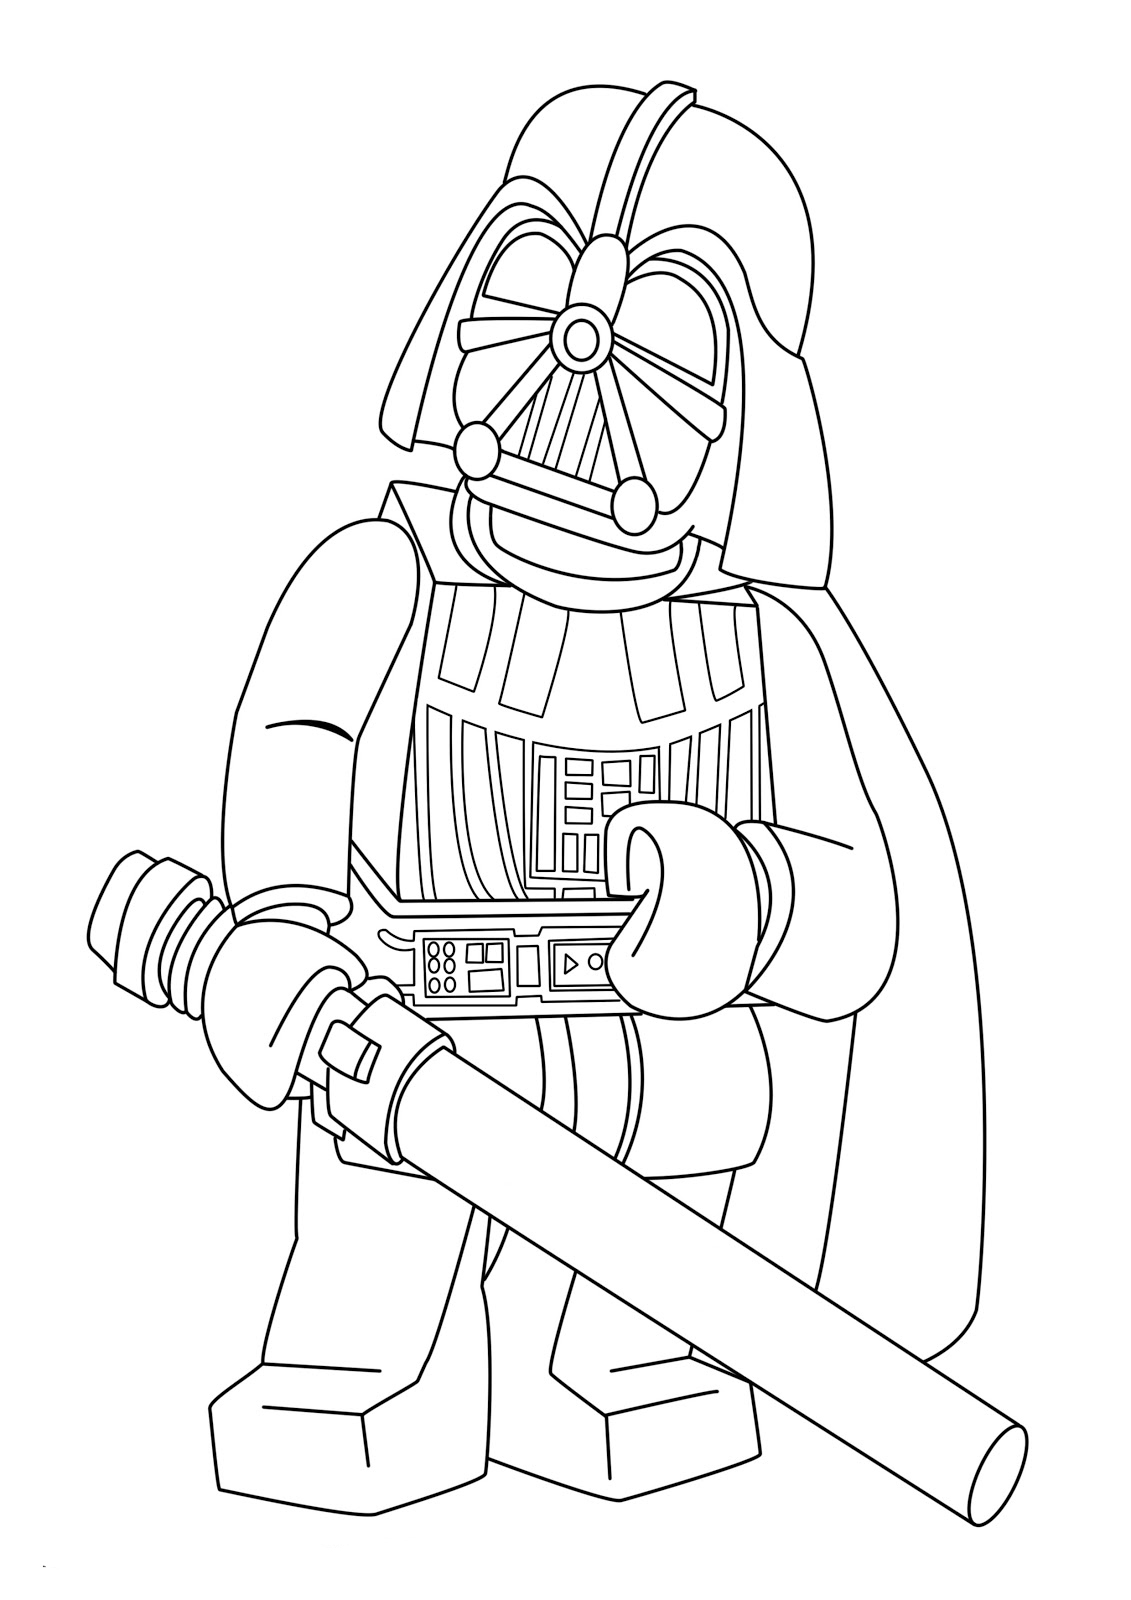 coloring pictures lego lego people coloring lesson coloring pages for kids pictures lego coloring